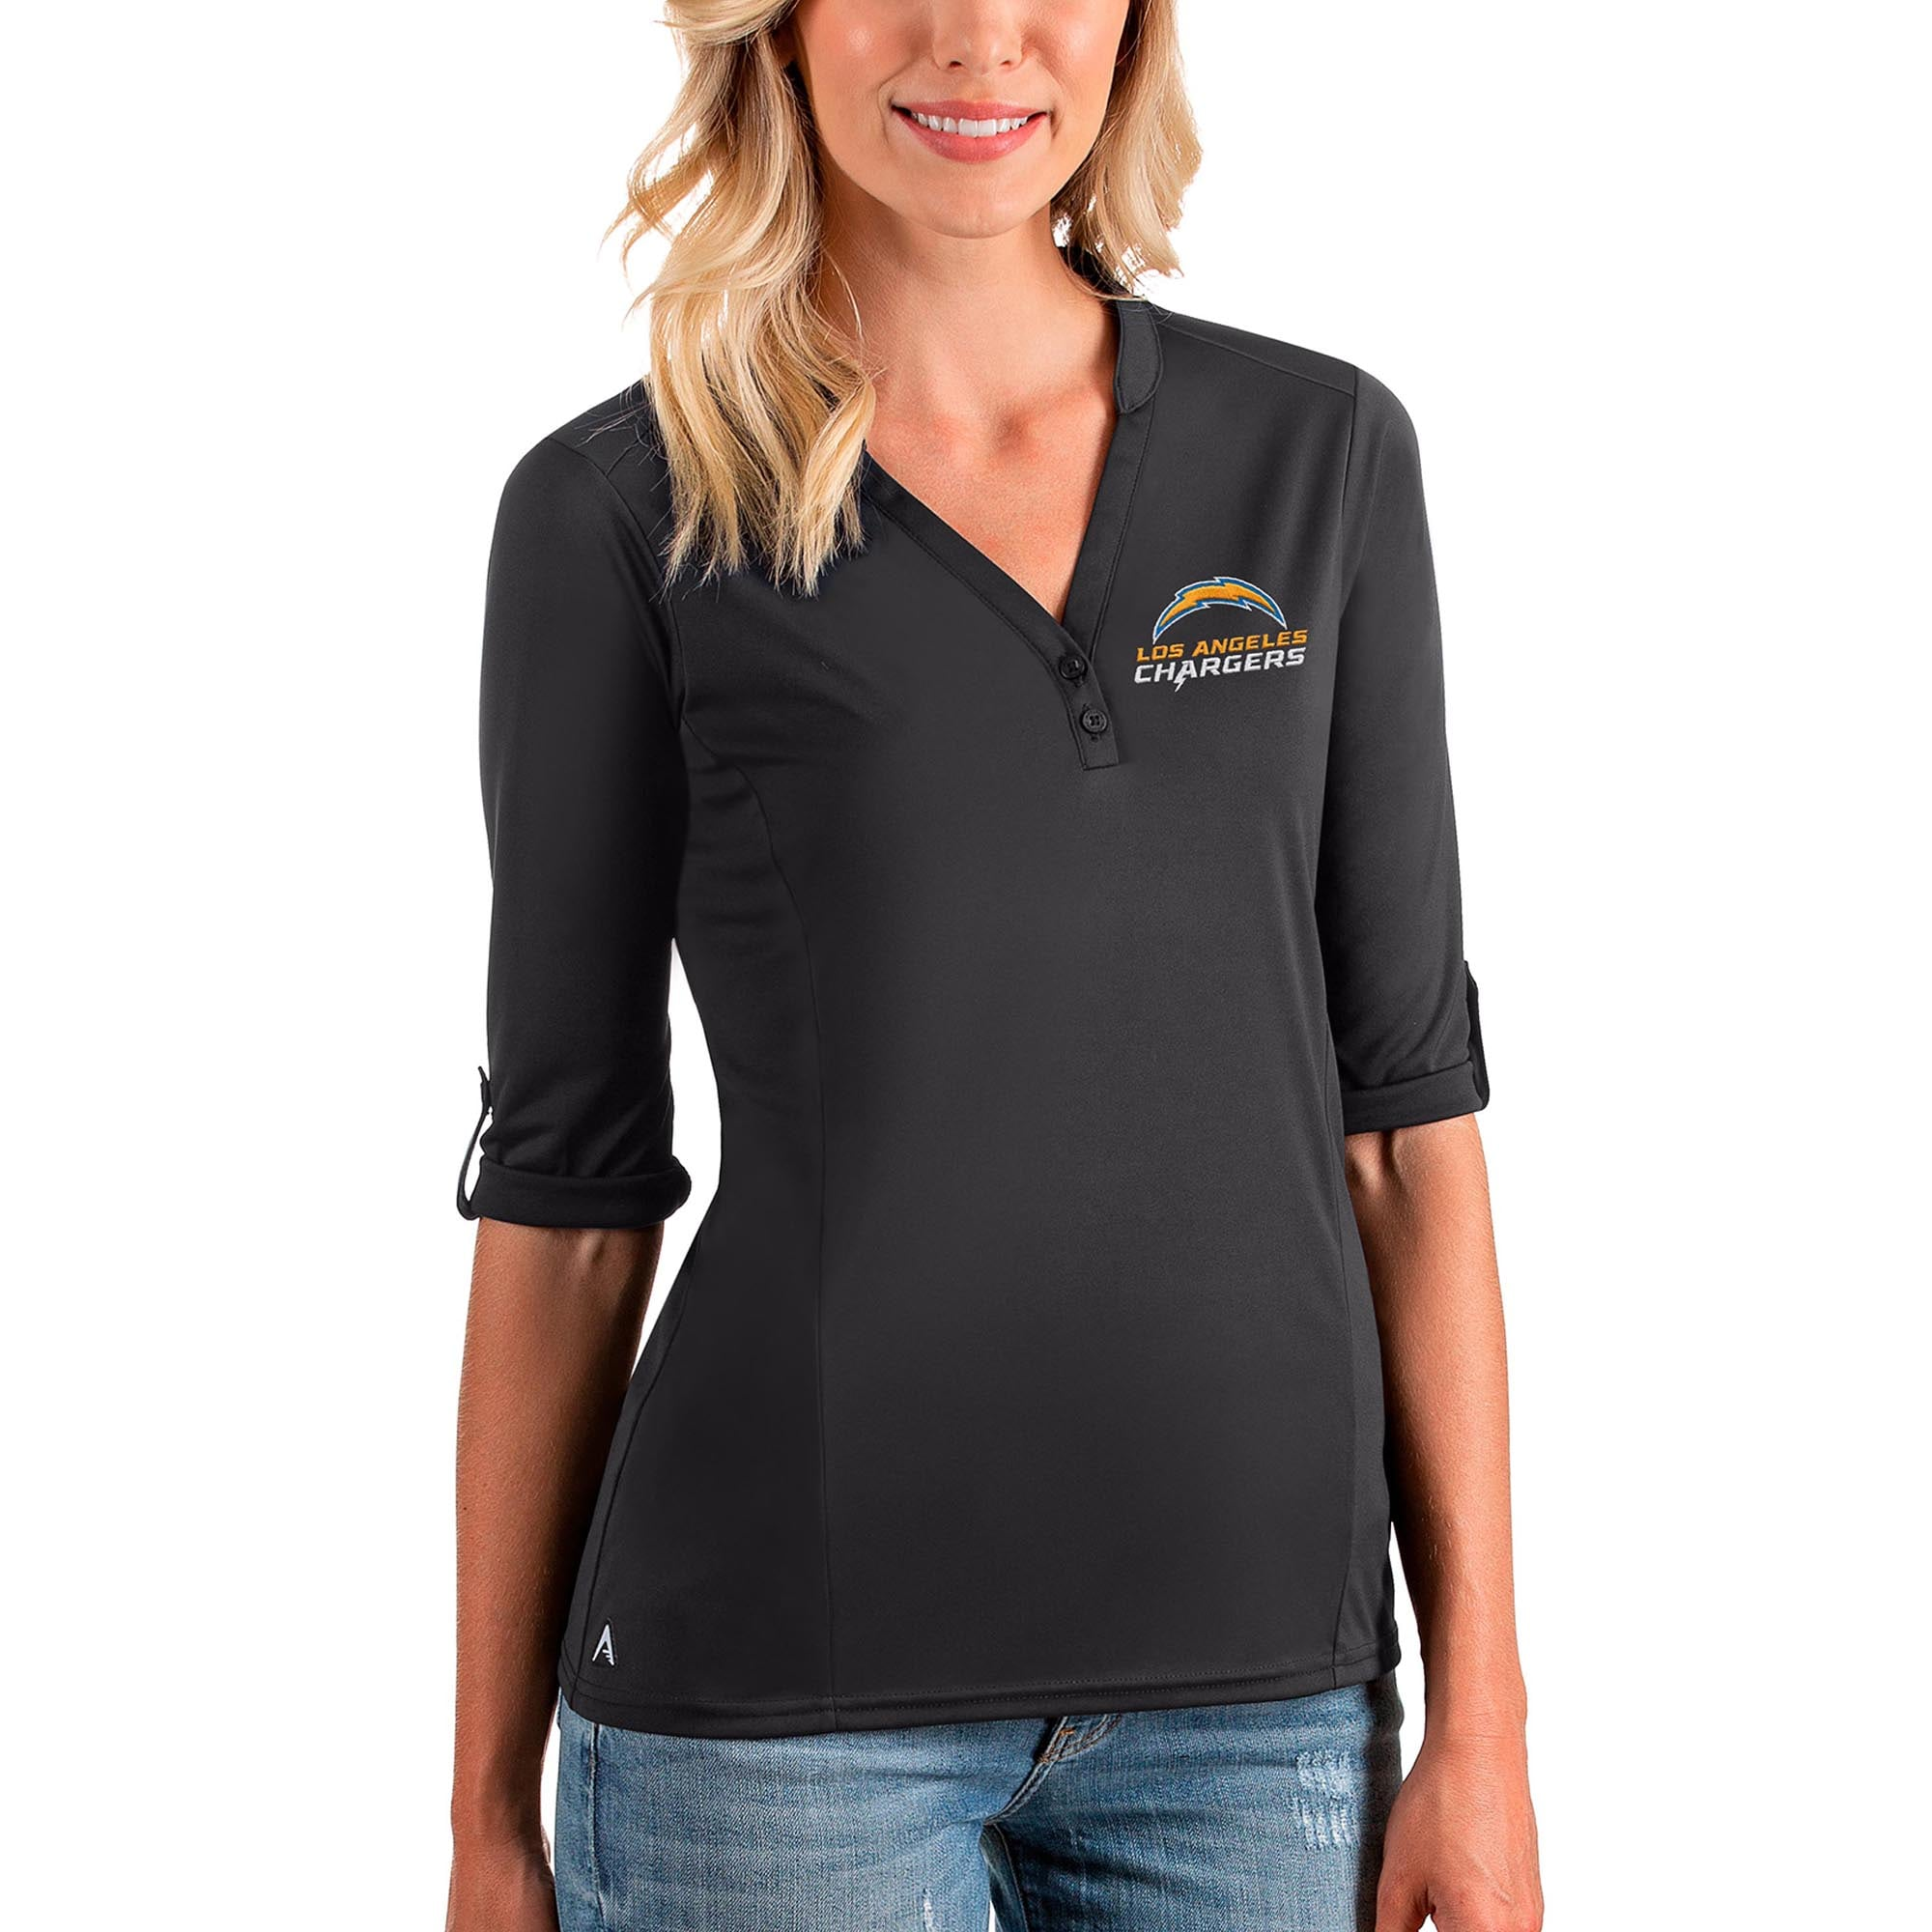 Los Angeles Chargers Antigua Women's Accolade 3/4-Sleeve Top - Charcoal